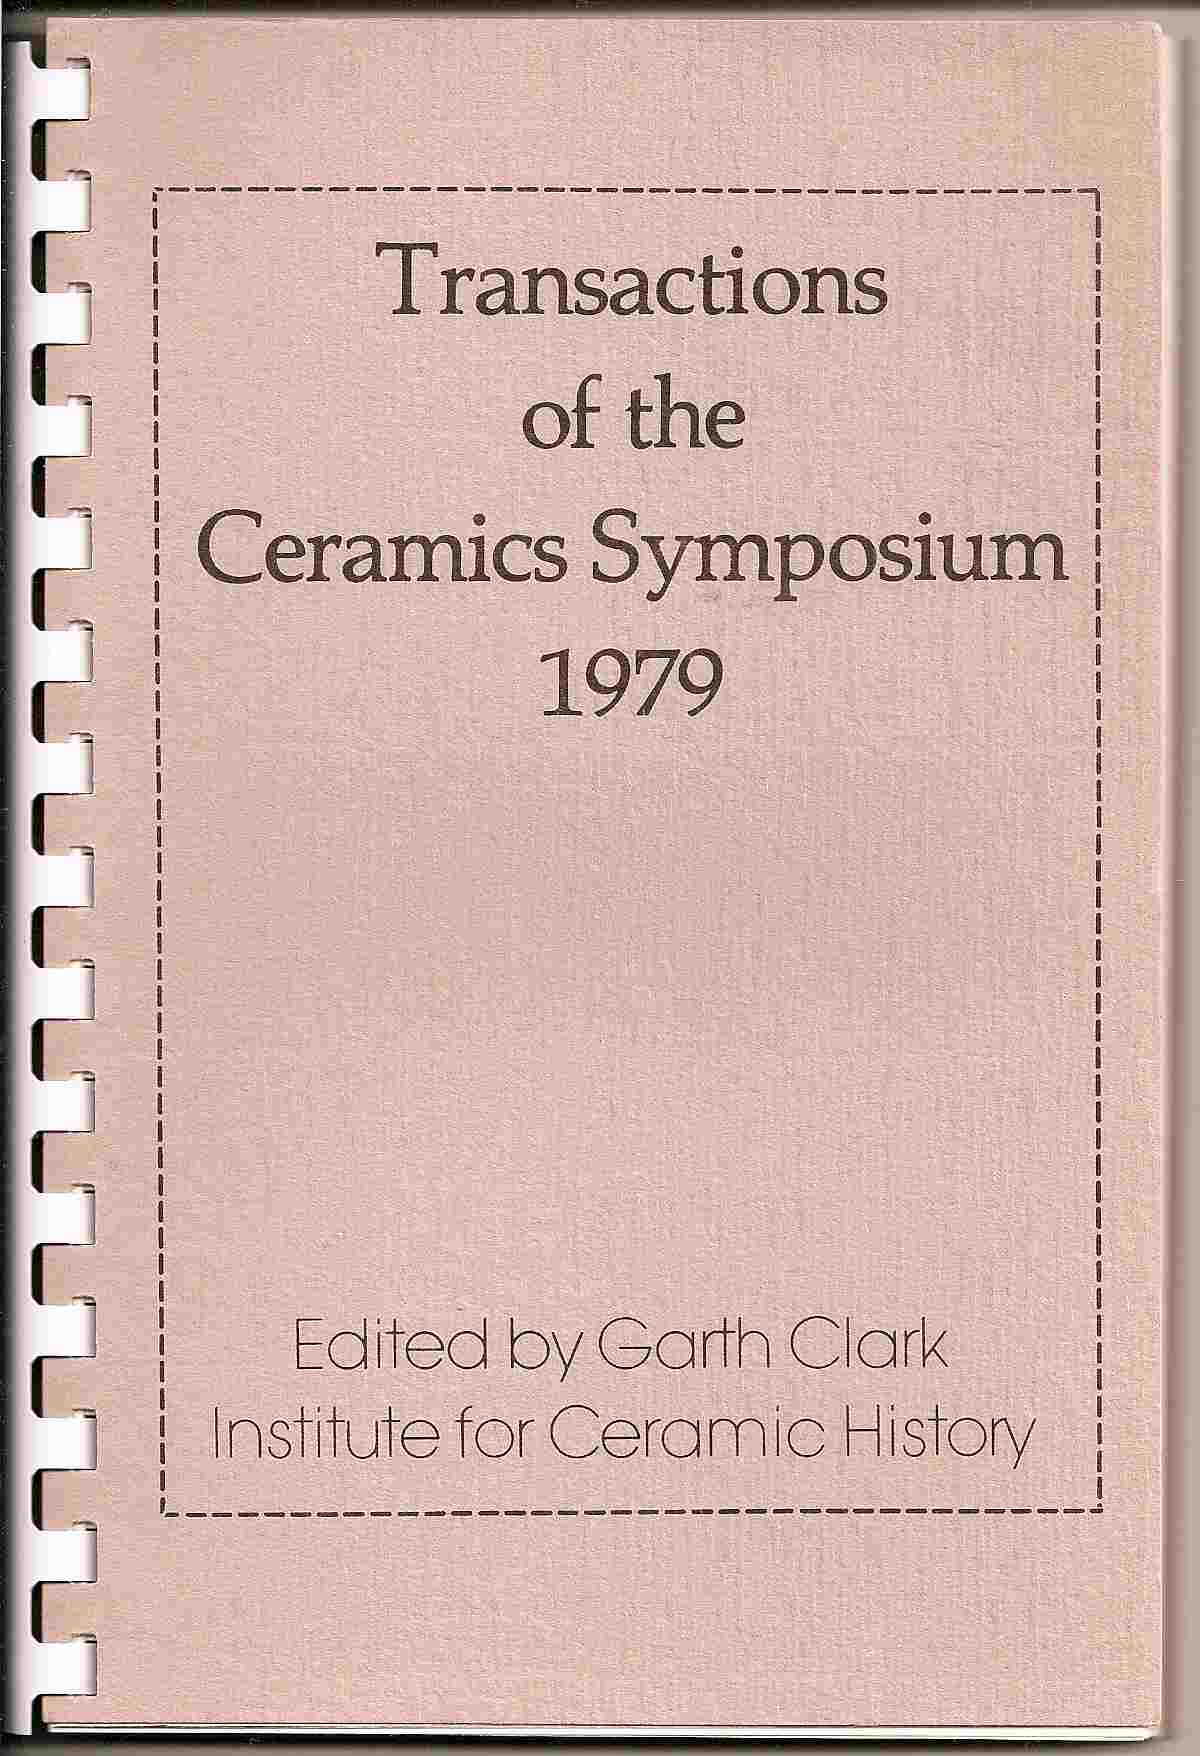 Image for Papers presented at the Ceramics Symposium '79, Syracuse Univ. June 1-3; TRANSACTIONS OF THE CERAMICS SYMPOSIUM 1979: